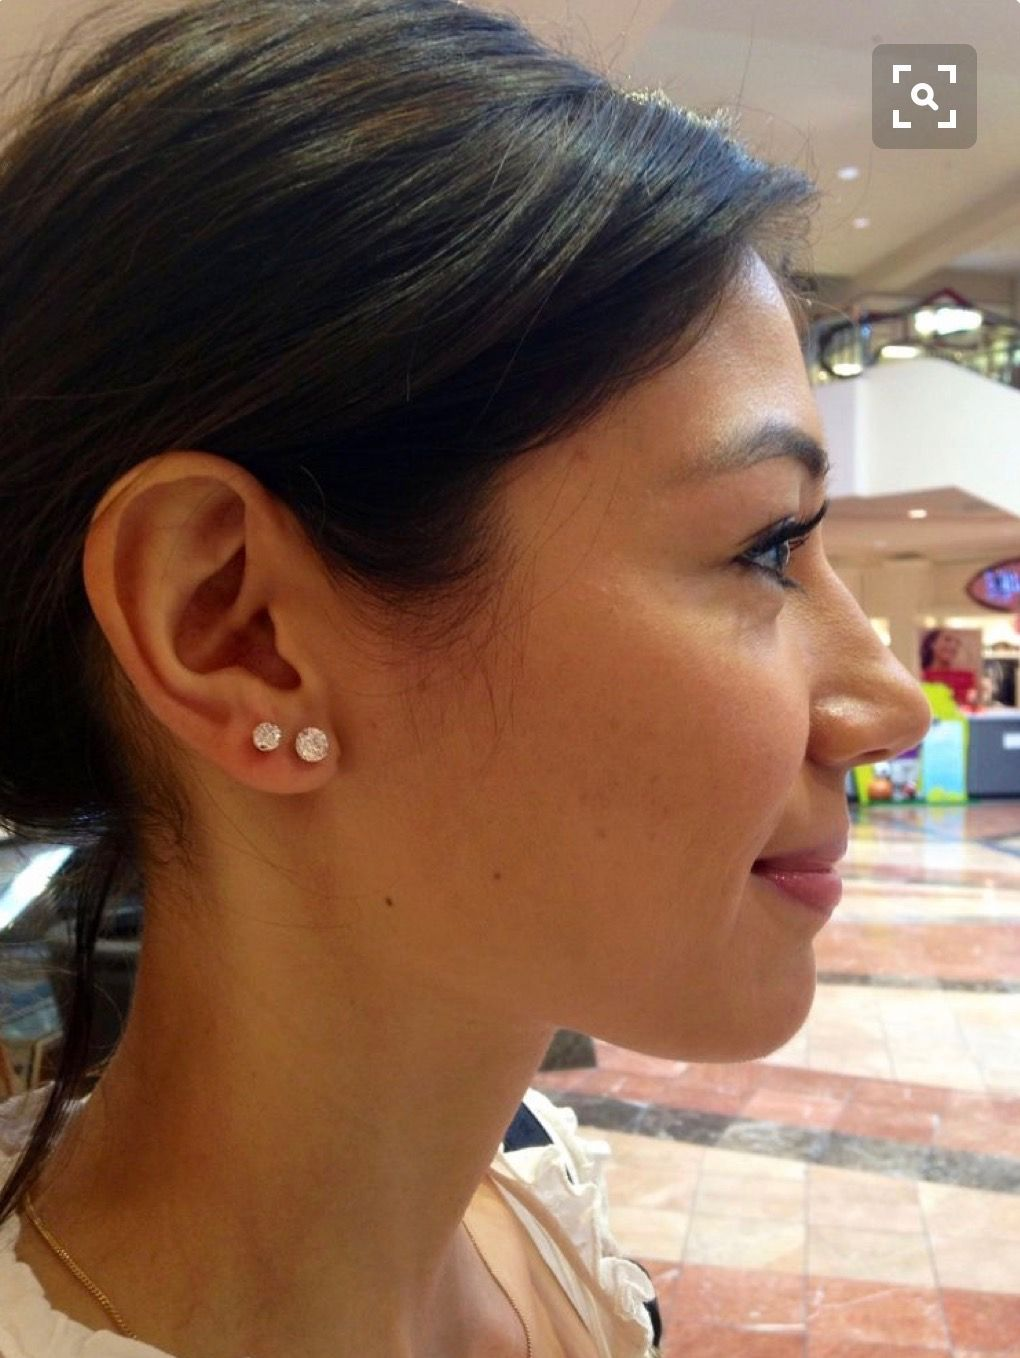 Double piercing nose ring  go follow  ngarciia asap   Piercing  Pinterest  Ear